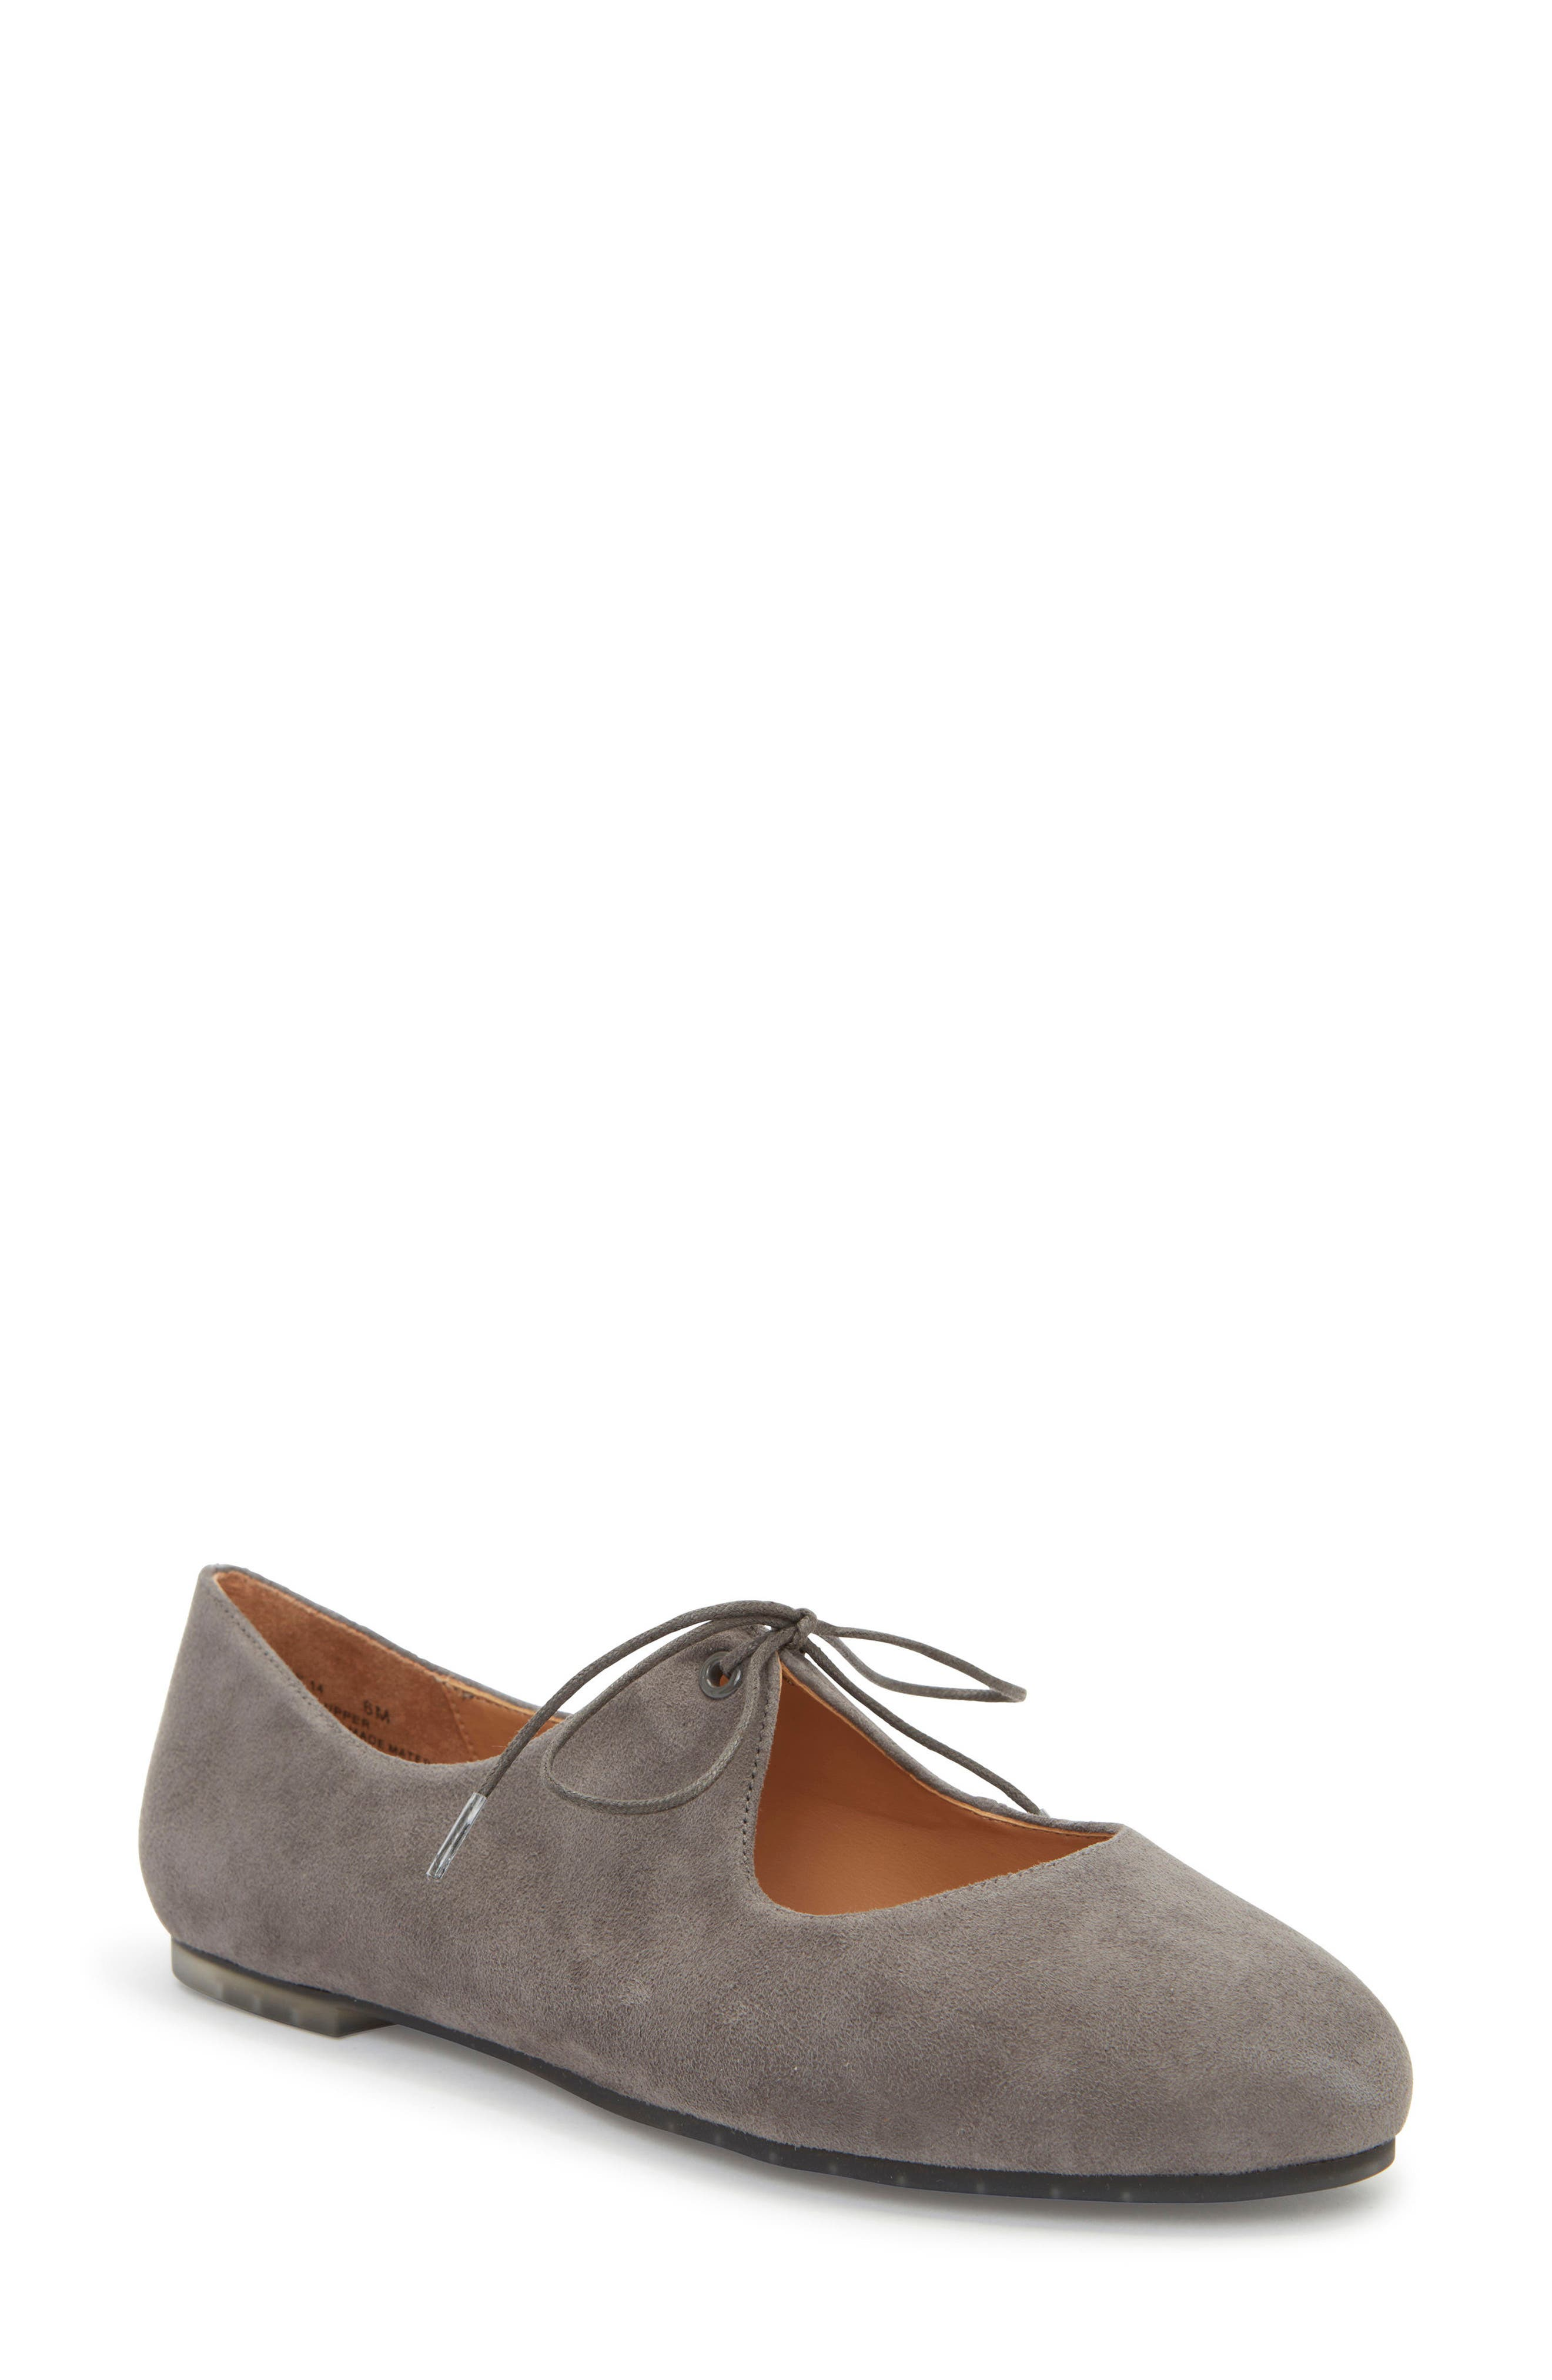 Cacey Mary Jane Flat,                         Main,                         color, Charcoal Suede